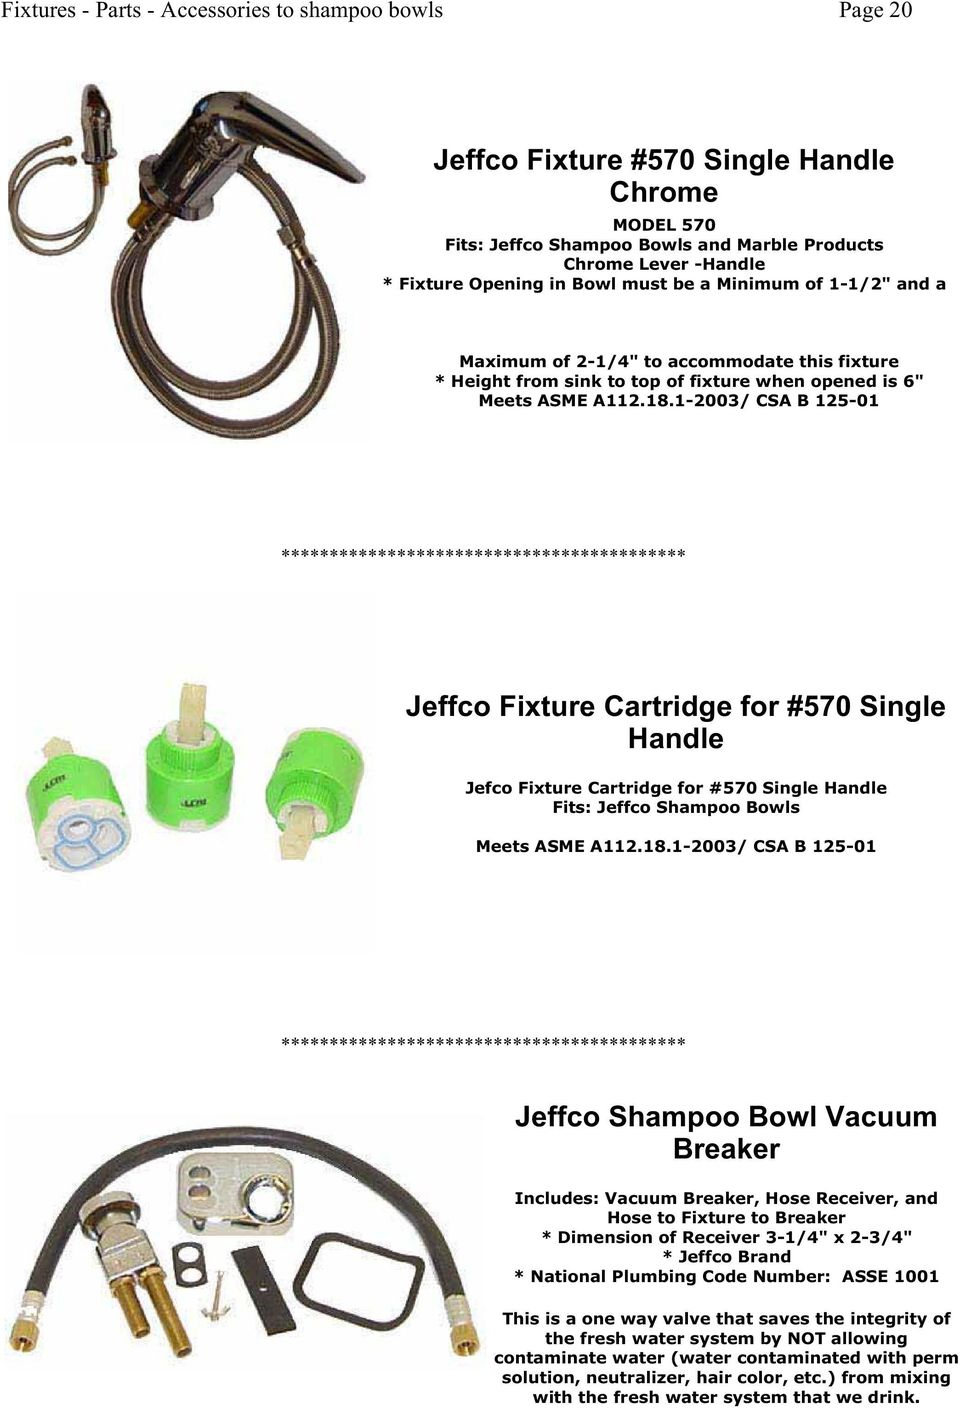 1-2003/ CSA B 125-01 Jeffco Fixture Cartridge for #570 Single Handle Jefco Fixture Cartridge for #570 Single Handle Fits: Jeffco Shampoo Bowls Meets ASME A112.18.